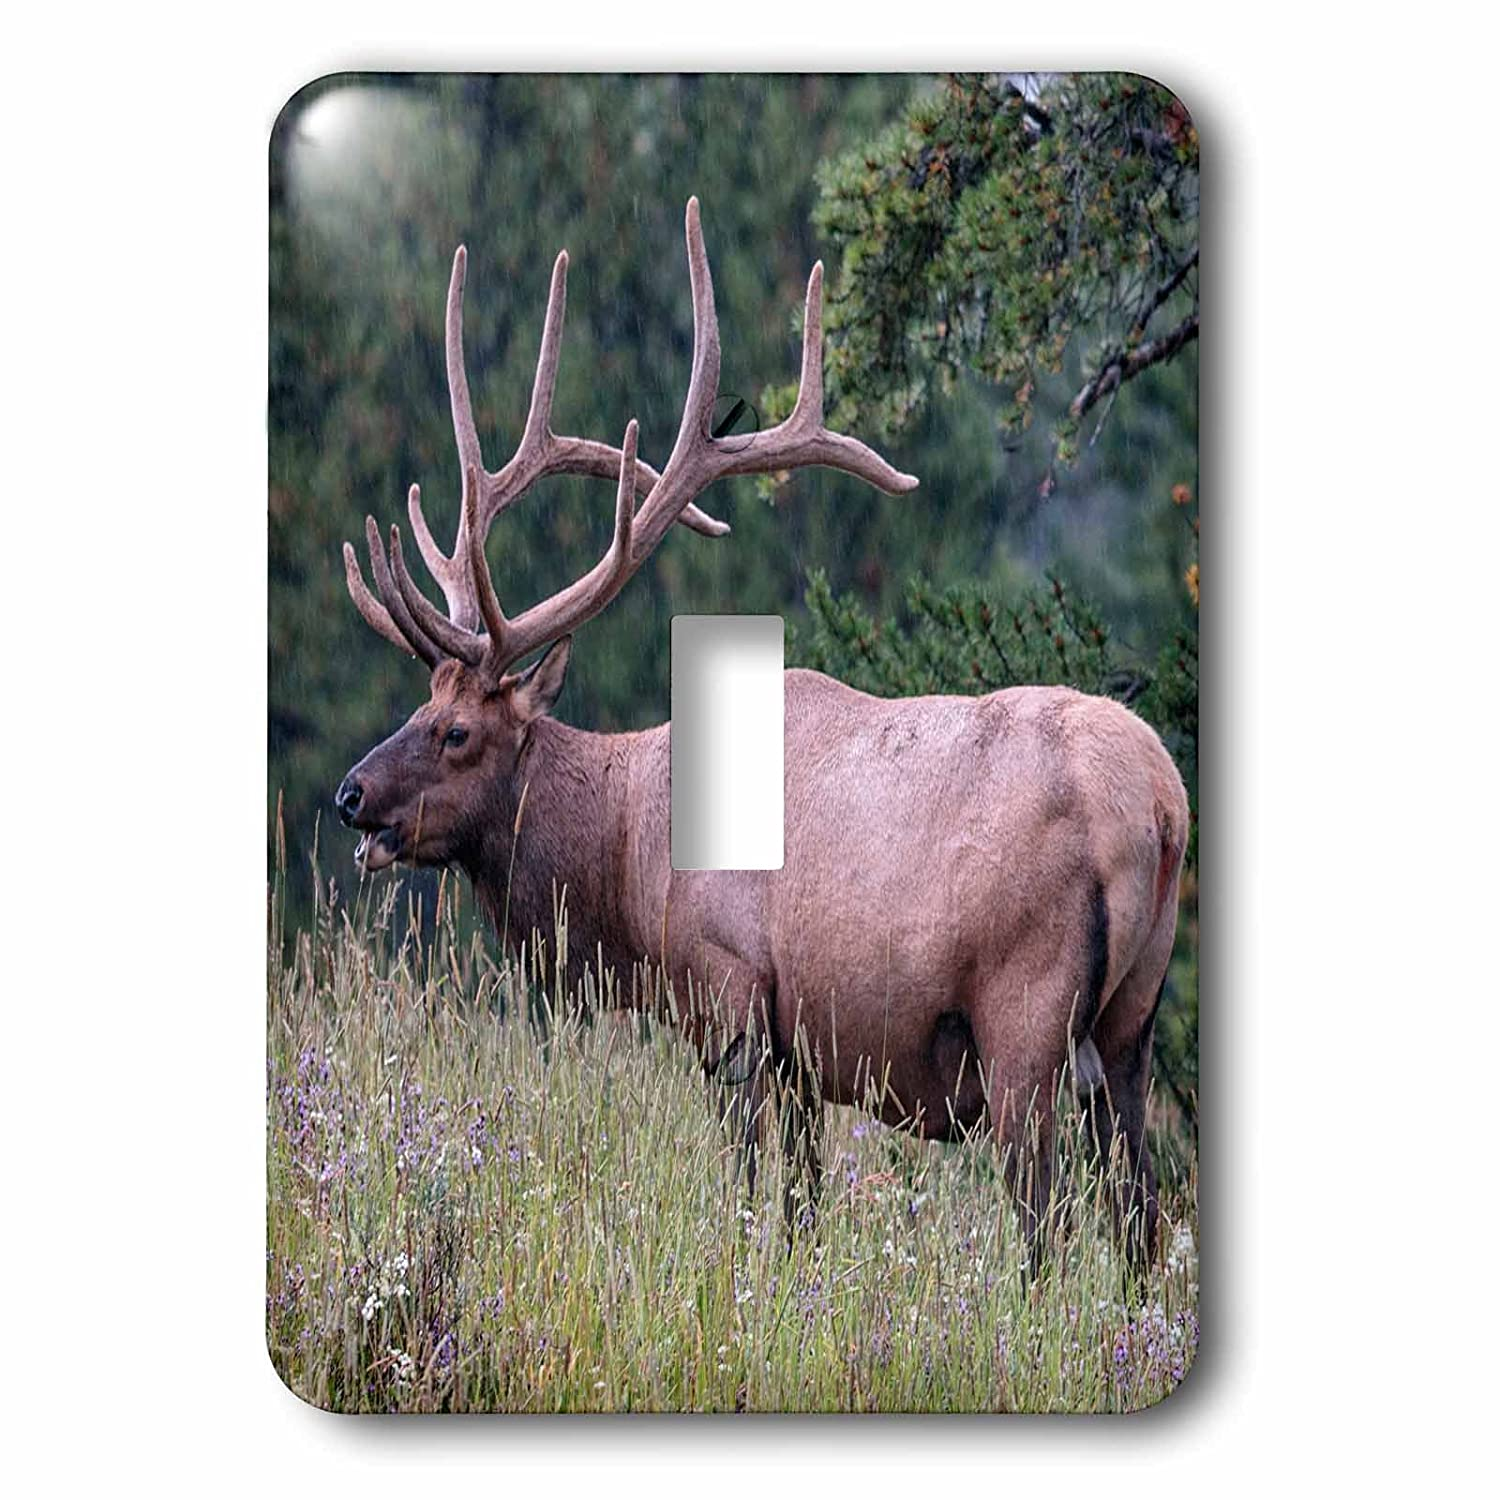 Yellowstone National Park Wyoming Toggle Switch 3dRose lsp/_279852/_1 Male Elk with Impressive Antlers Mixed